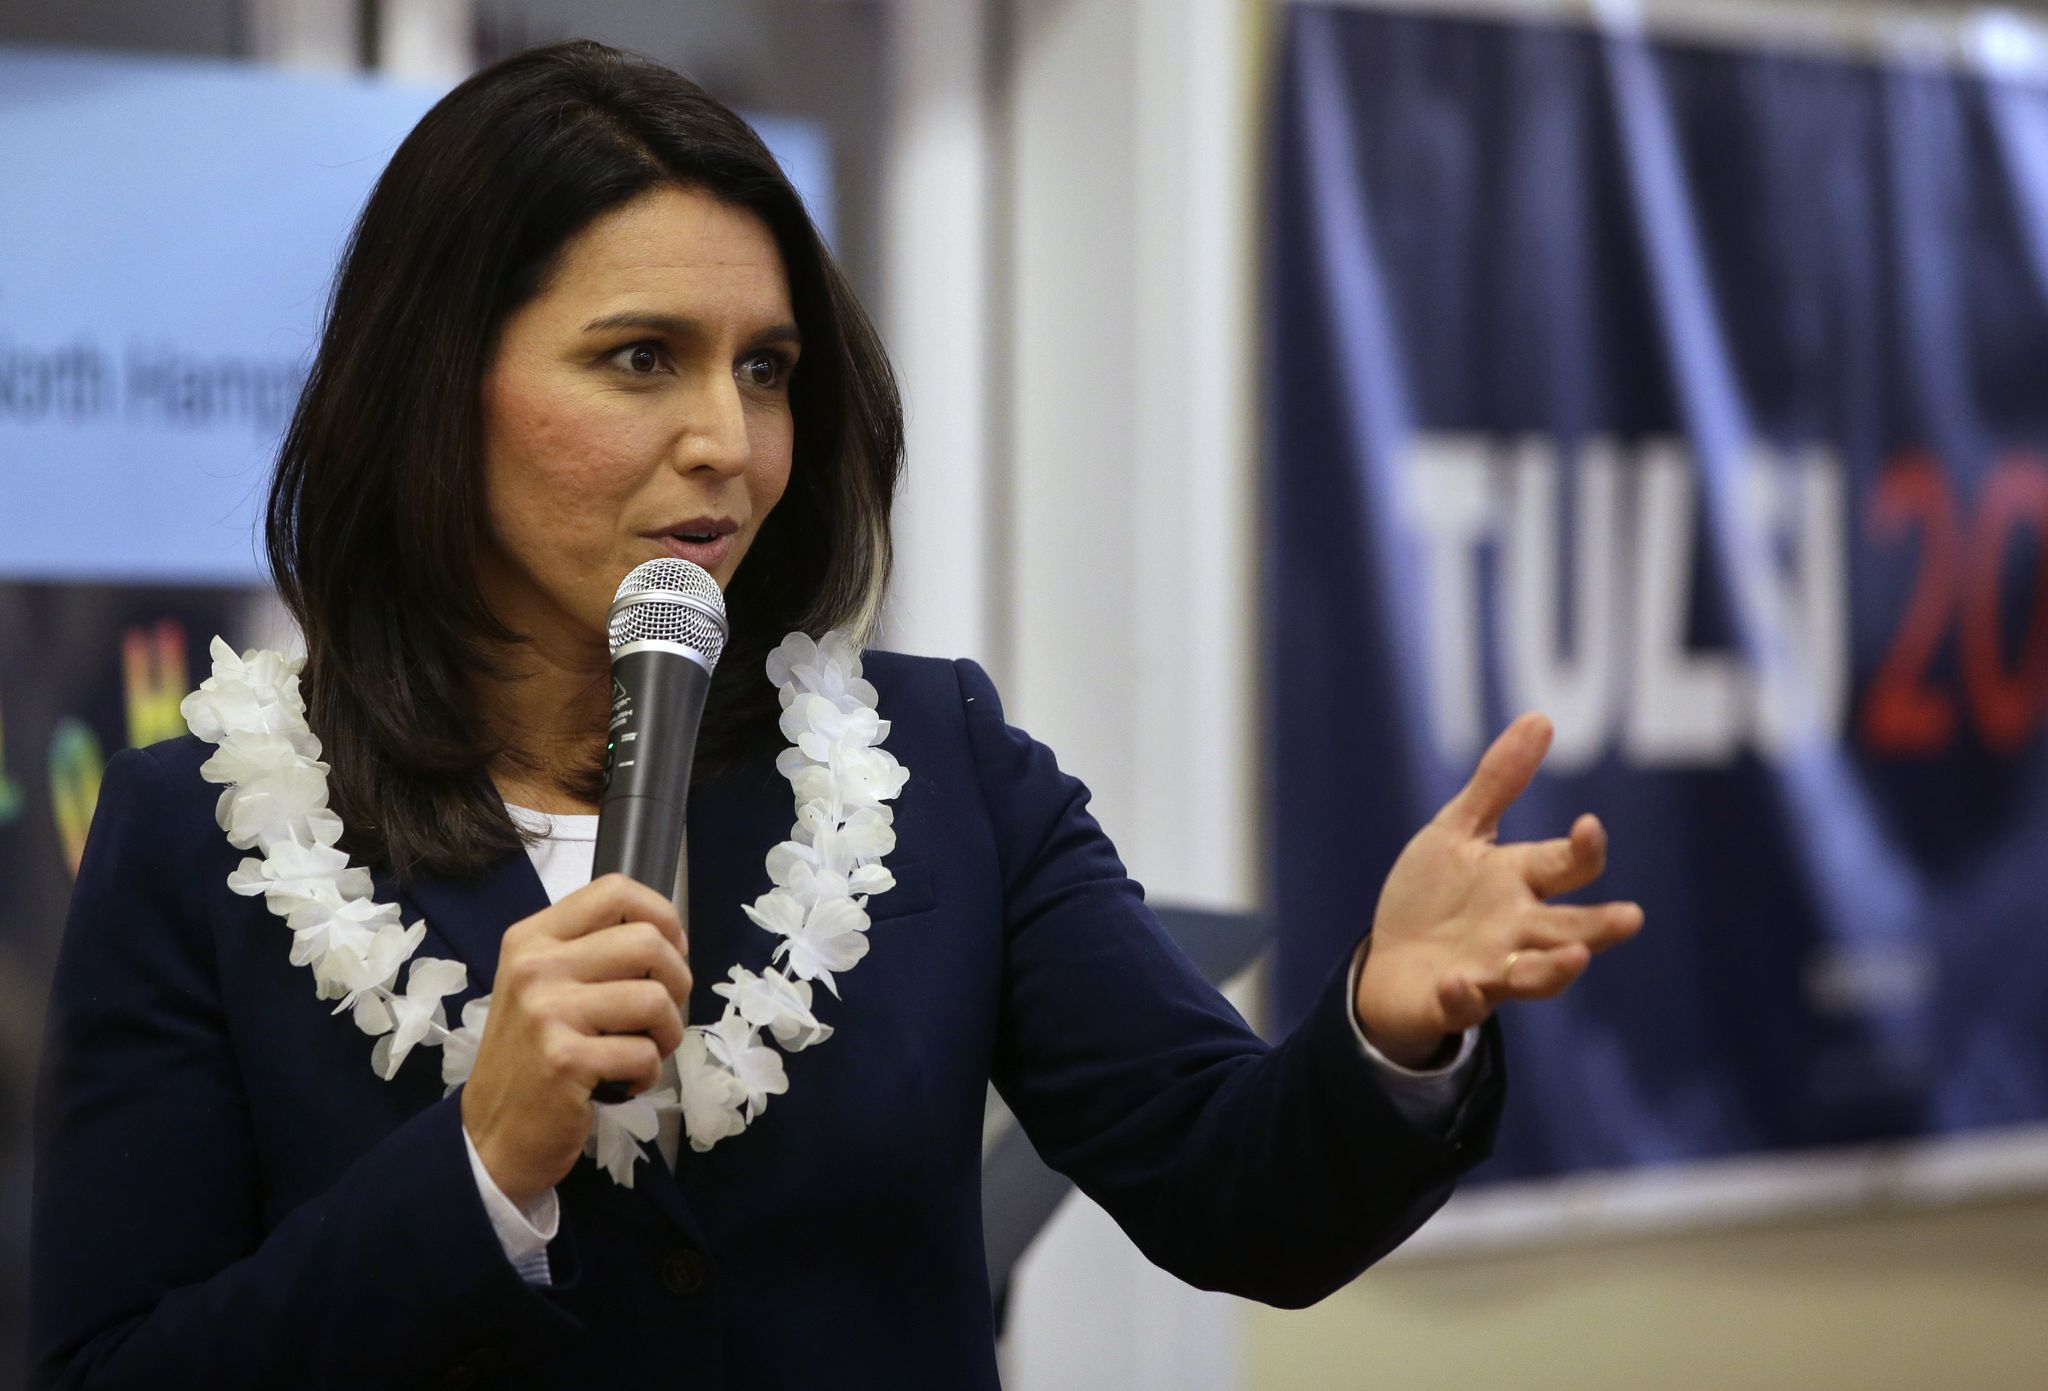 Rep. Tulsi Gabbard defends WikiLeaks: It 'spurred some necessary change'